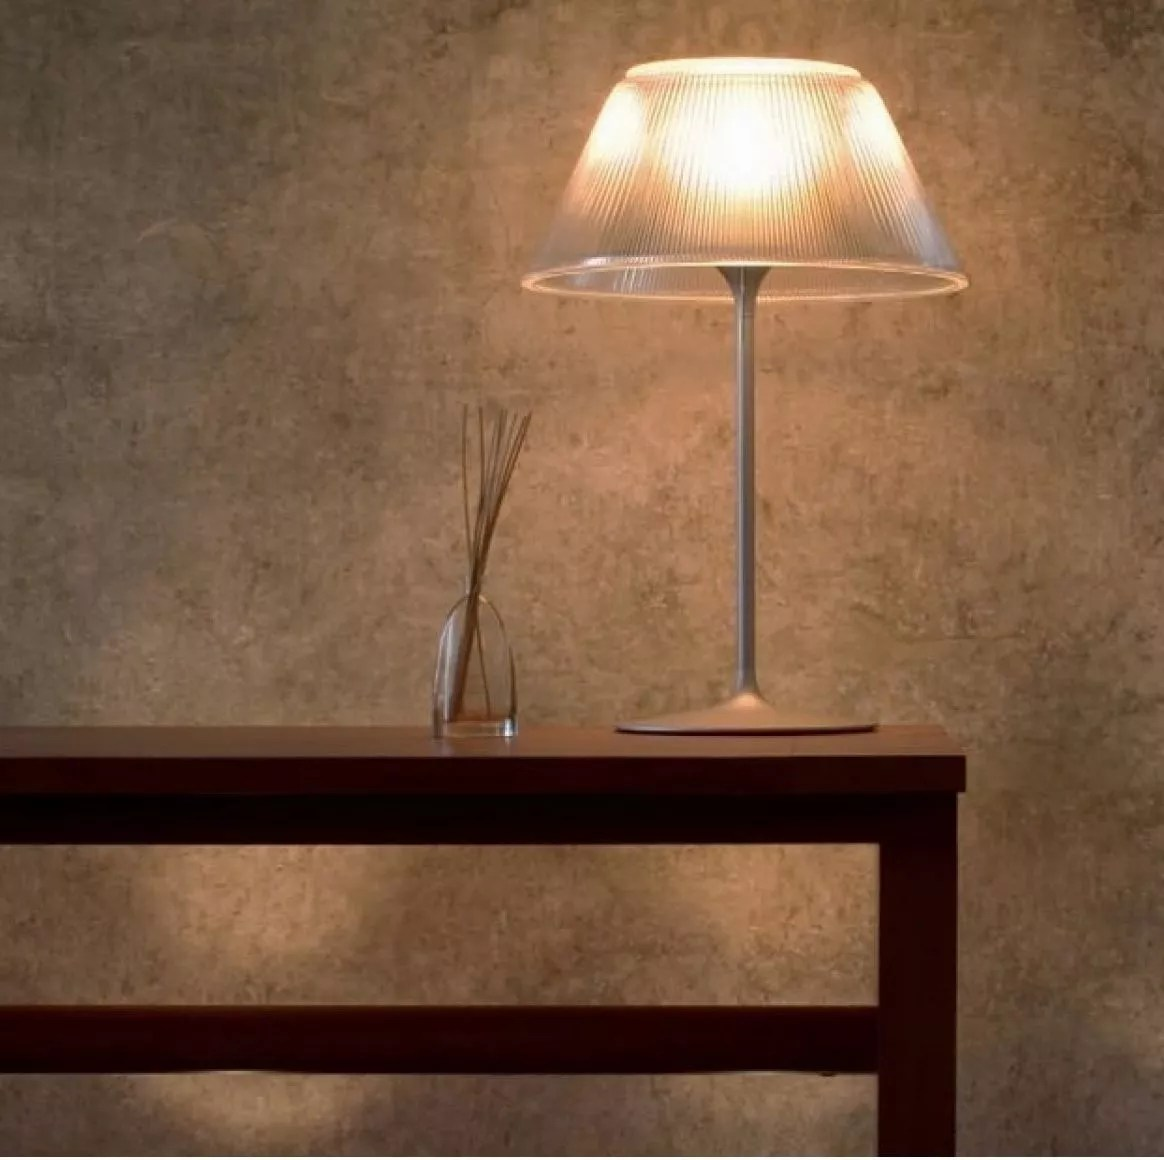 Simple Table Lamp Glass Lamp Shade For Table Lamp From China Manufacturer